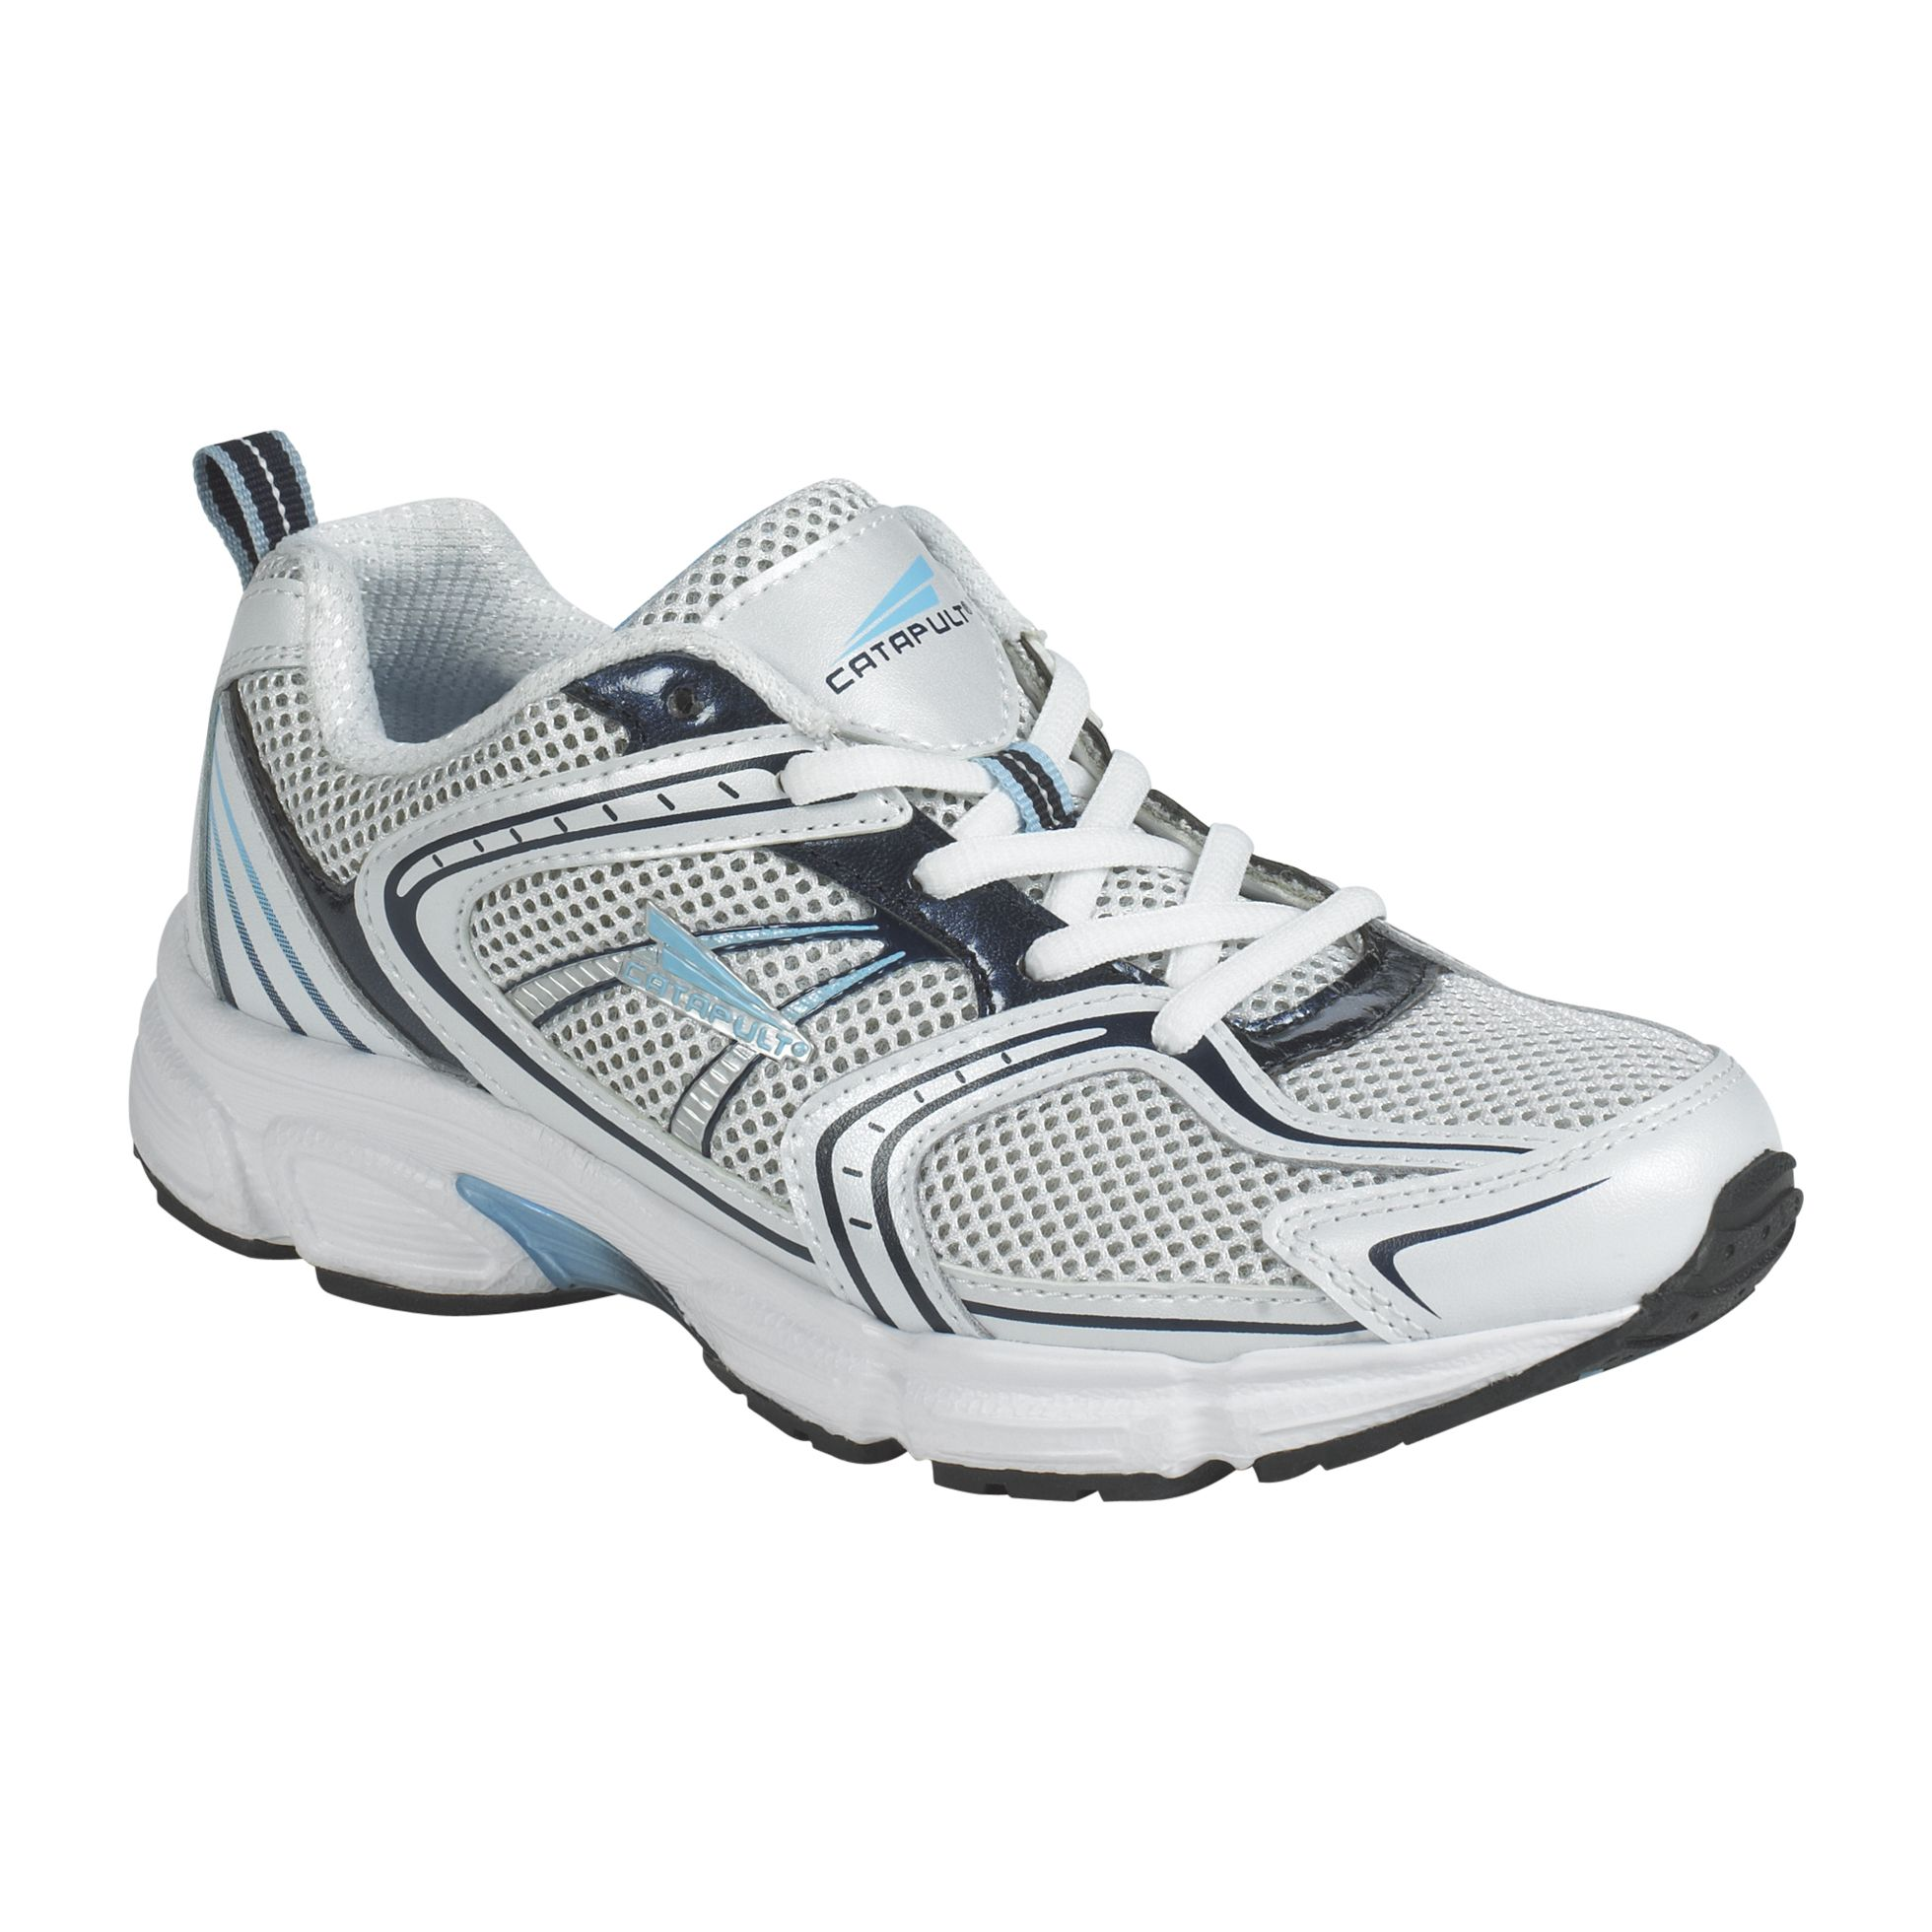 Women's Liv Athletic Performance Shoe